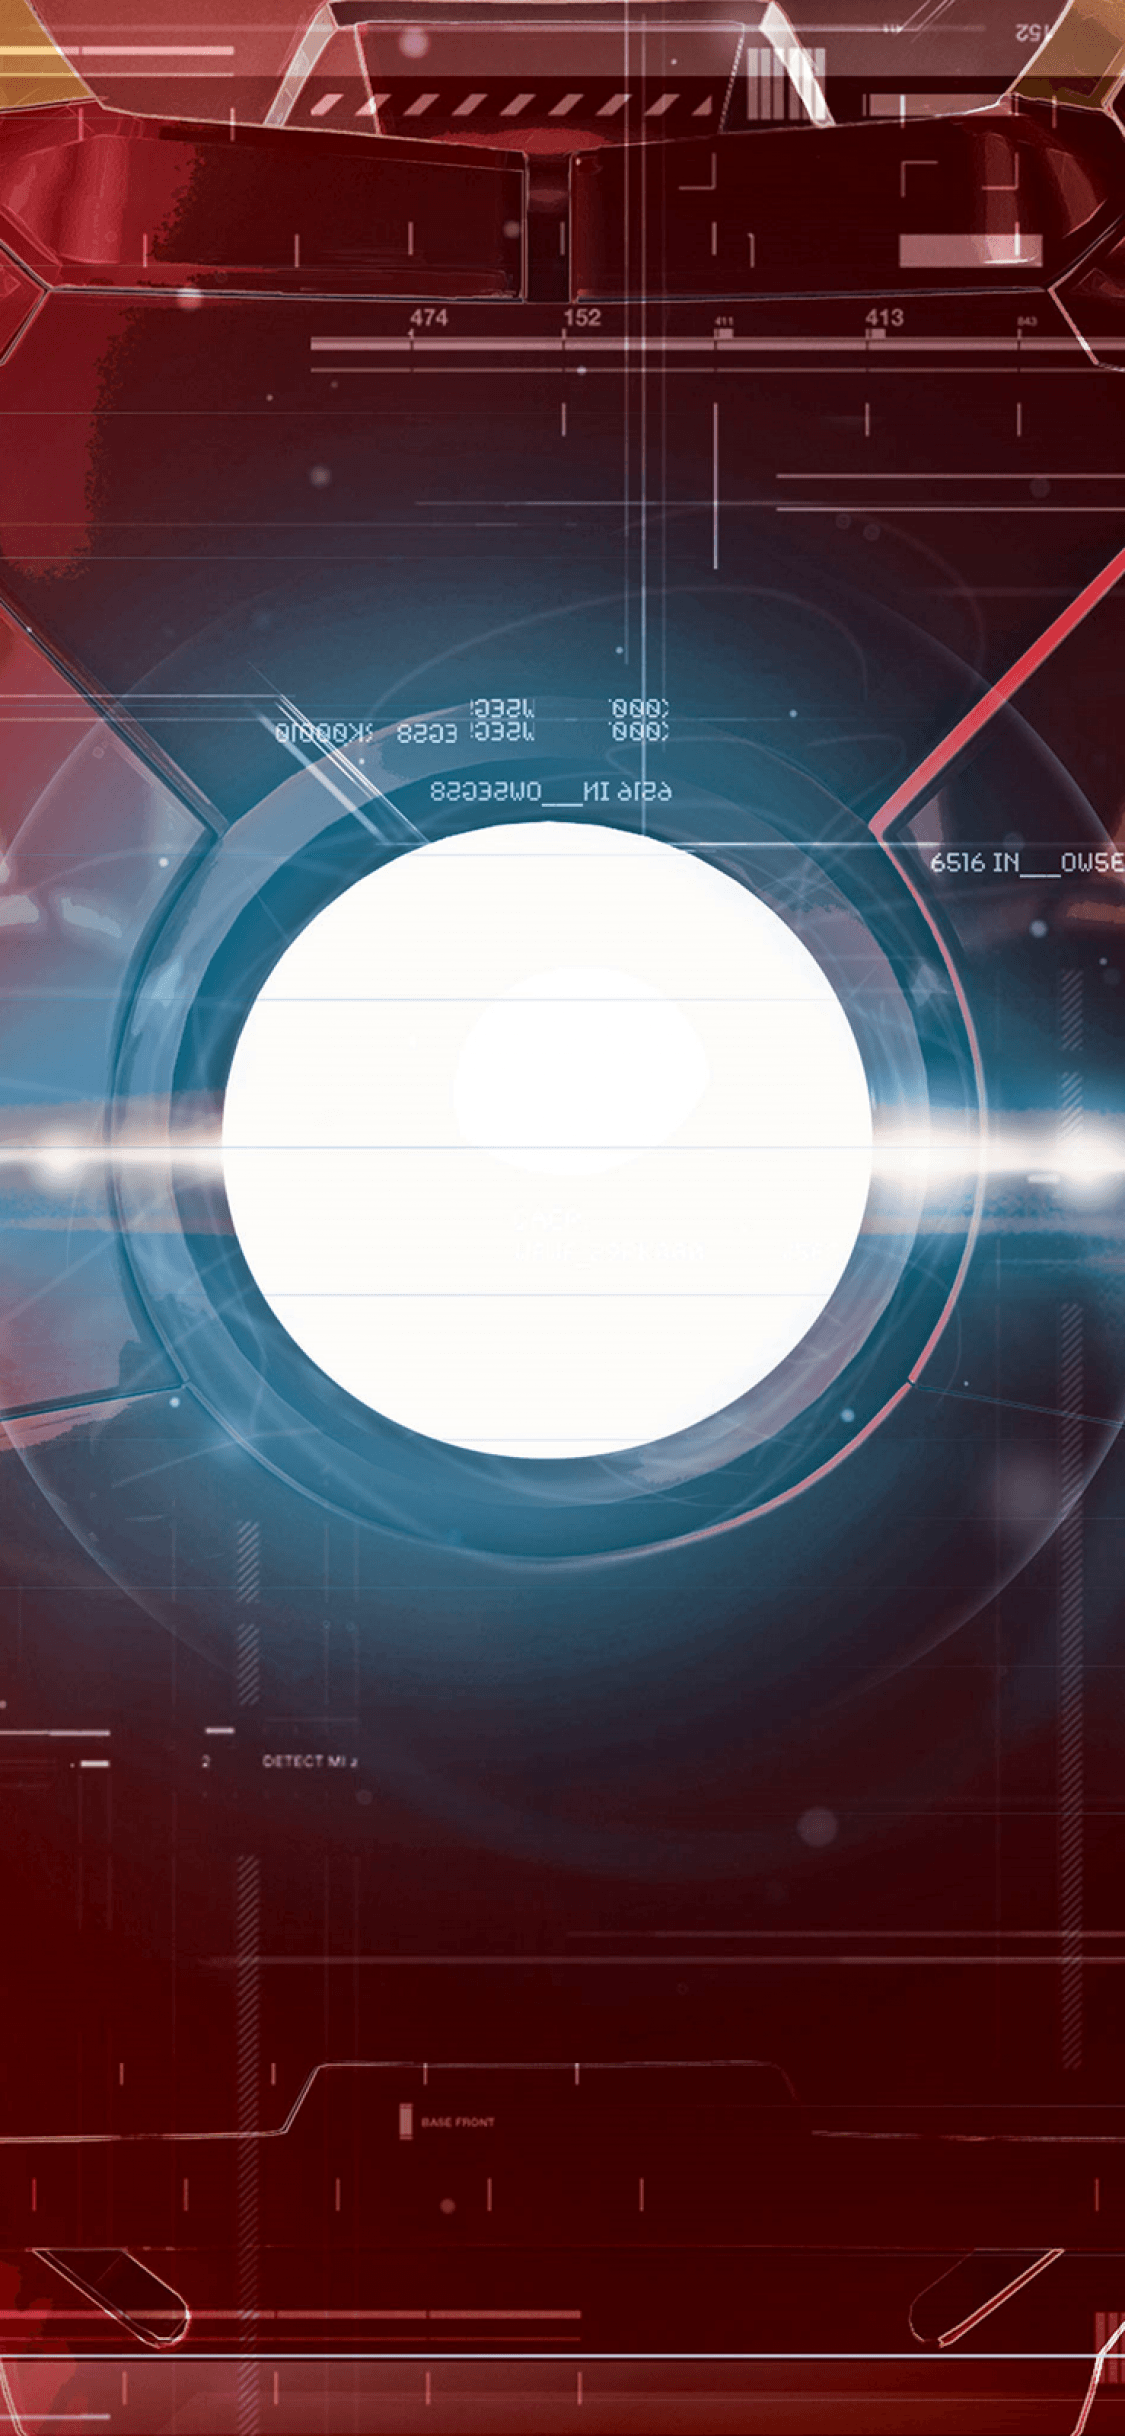 Download 1125x2436 Iron Man Interface, Sci-fi, Marvel Wallpapers for .